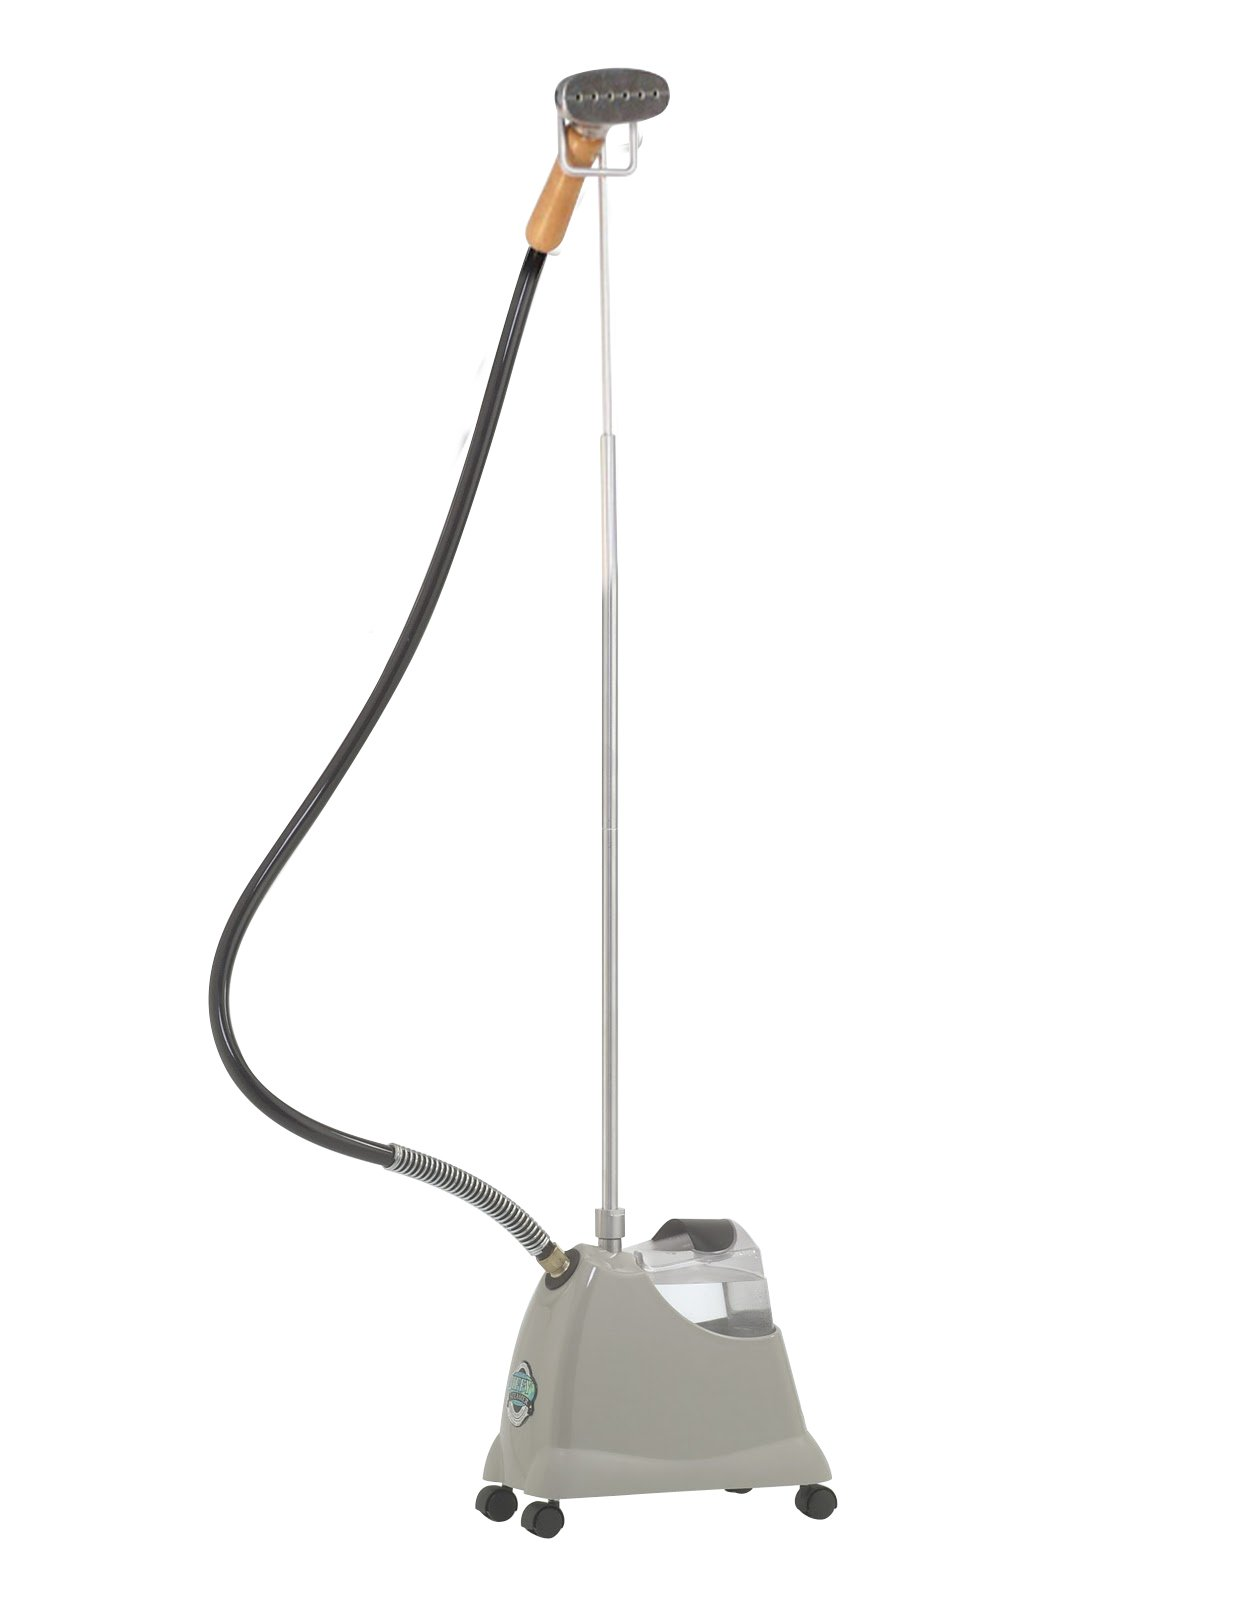 J-2000M Jiffy Garment Steamer with Metal Steam Head| residential series| 230V available for international use|| Voltage options available| Unbreakable 6'' Metal Head| Solid Wood Handle| 5.5' Hose|